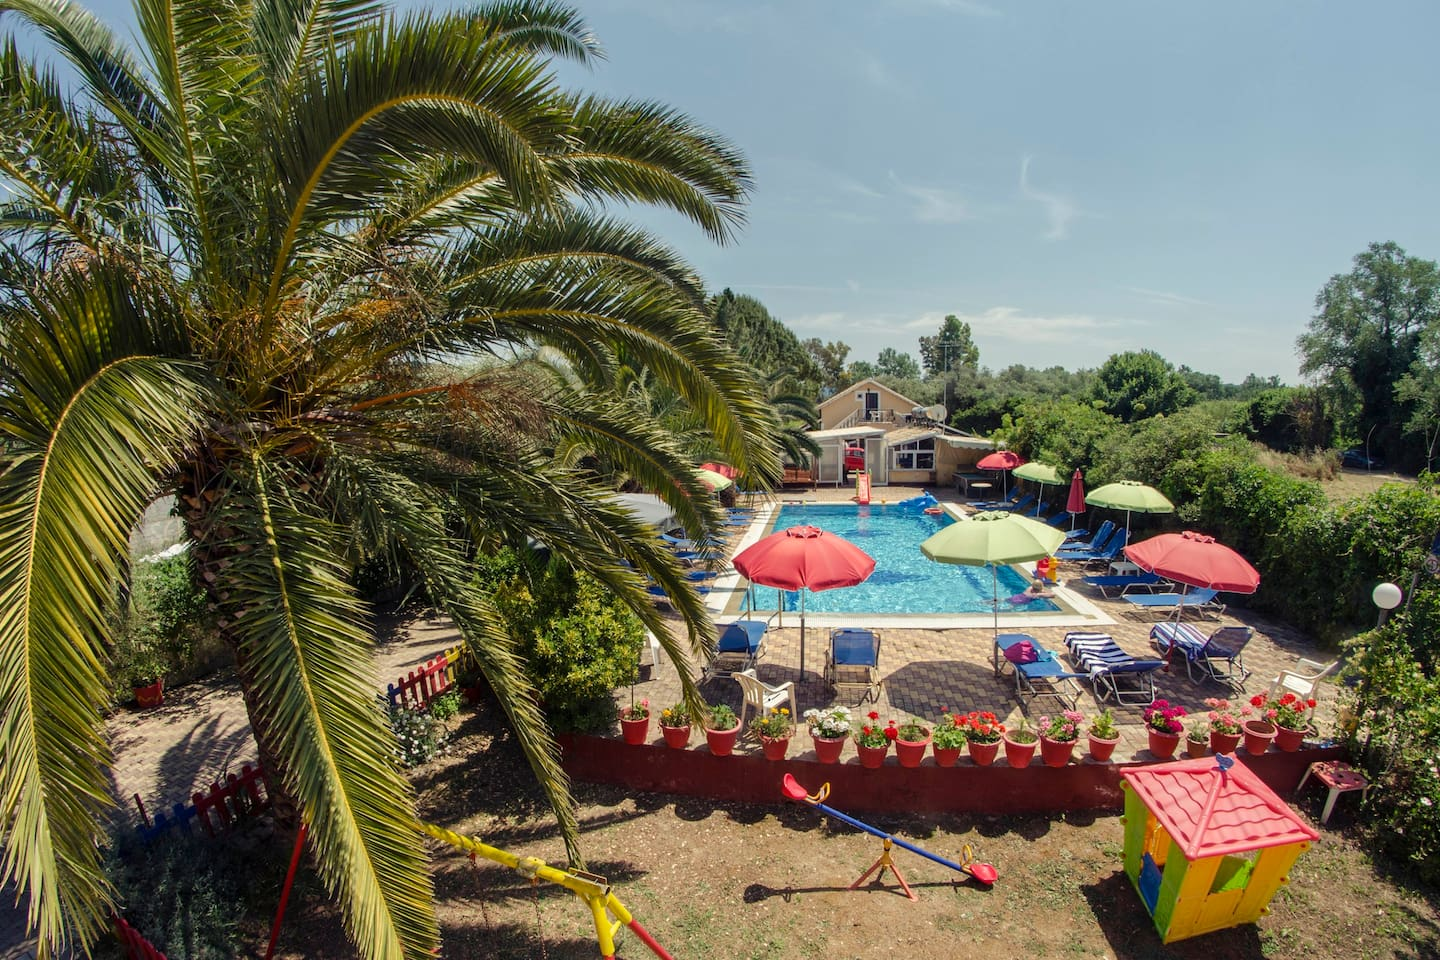 swimming pool and play ground area